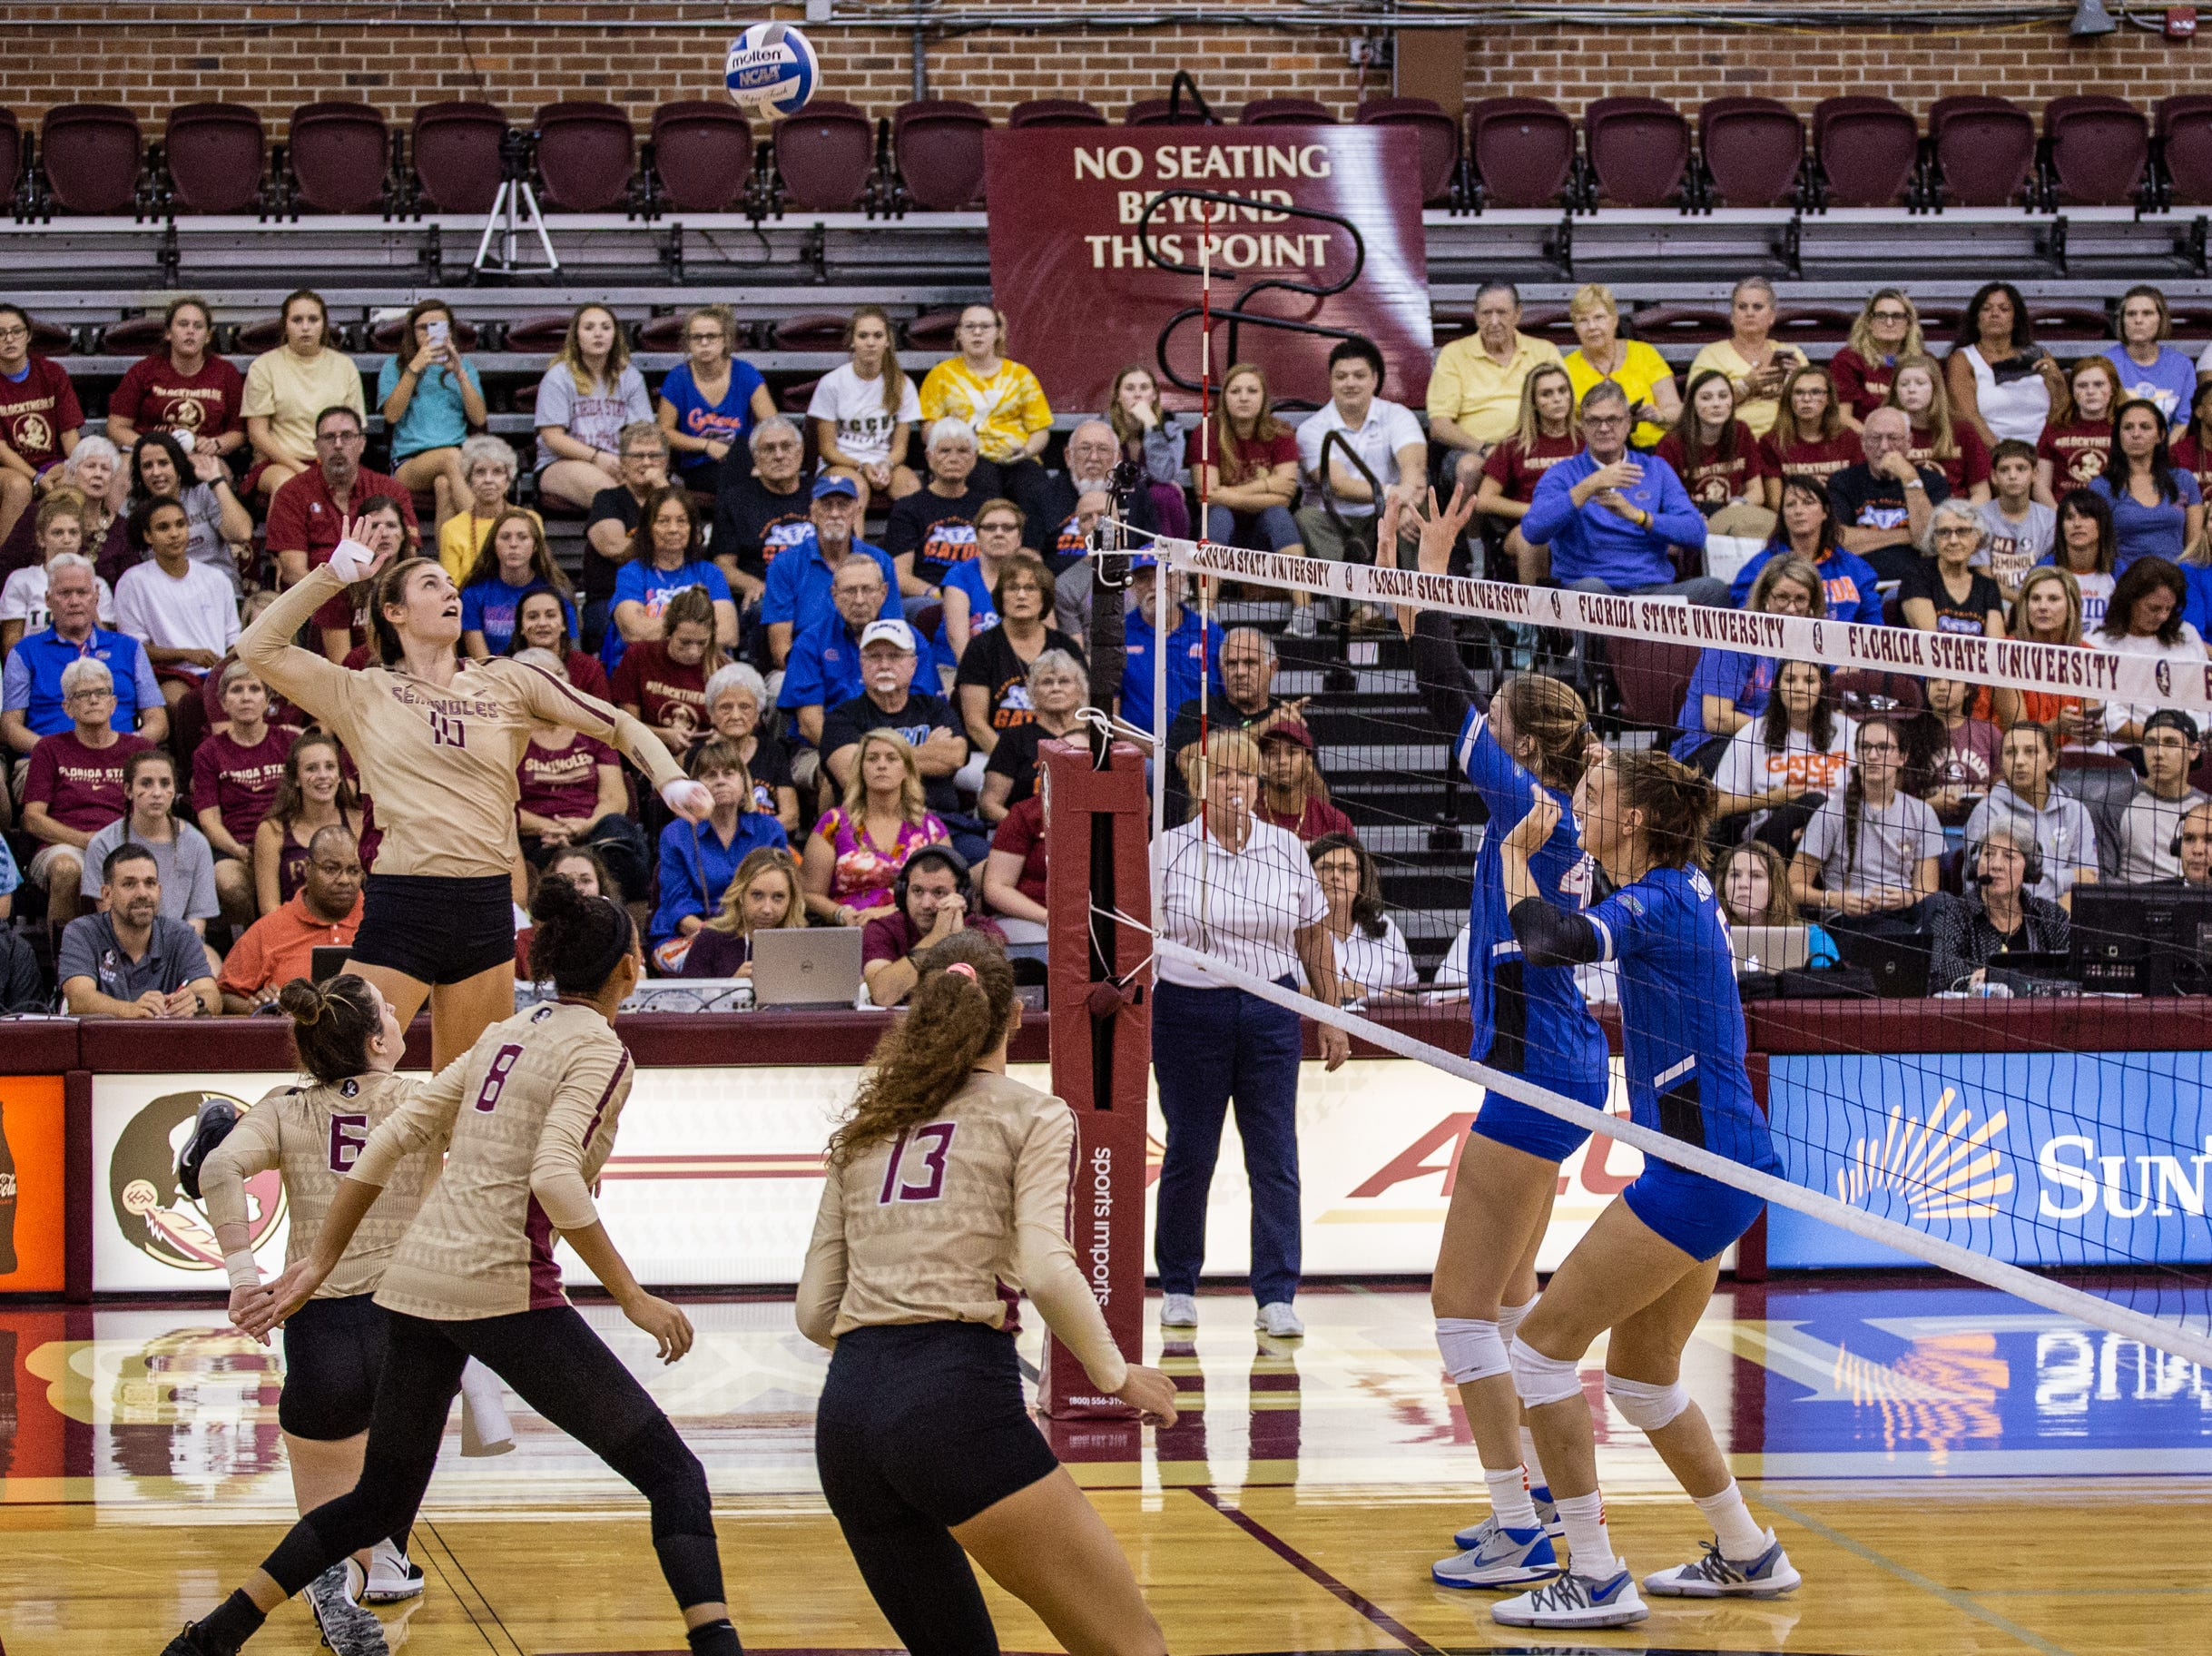 FSU outside hitter Christina Ambrose (10)  jumps to spike a ball over the net during the first set against Florida at Tully Gymnasium on Wednesday.